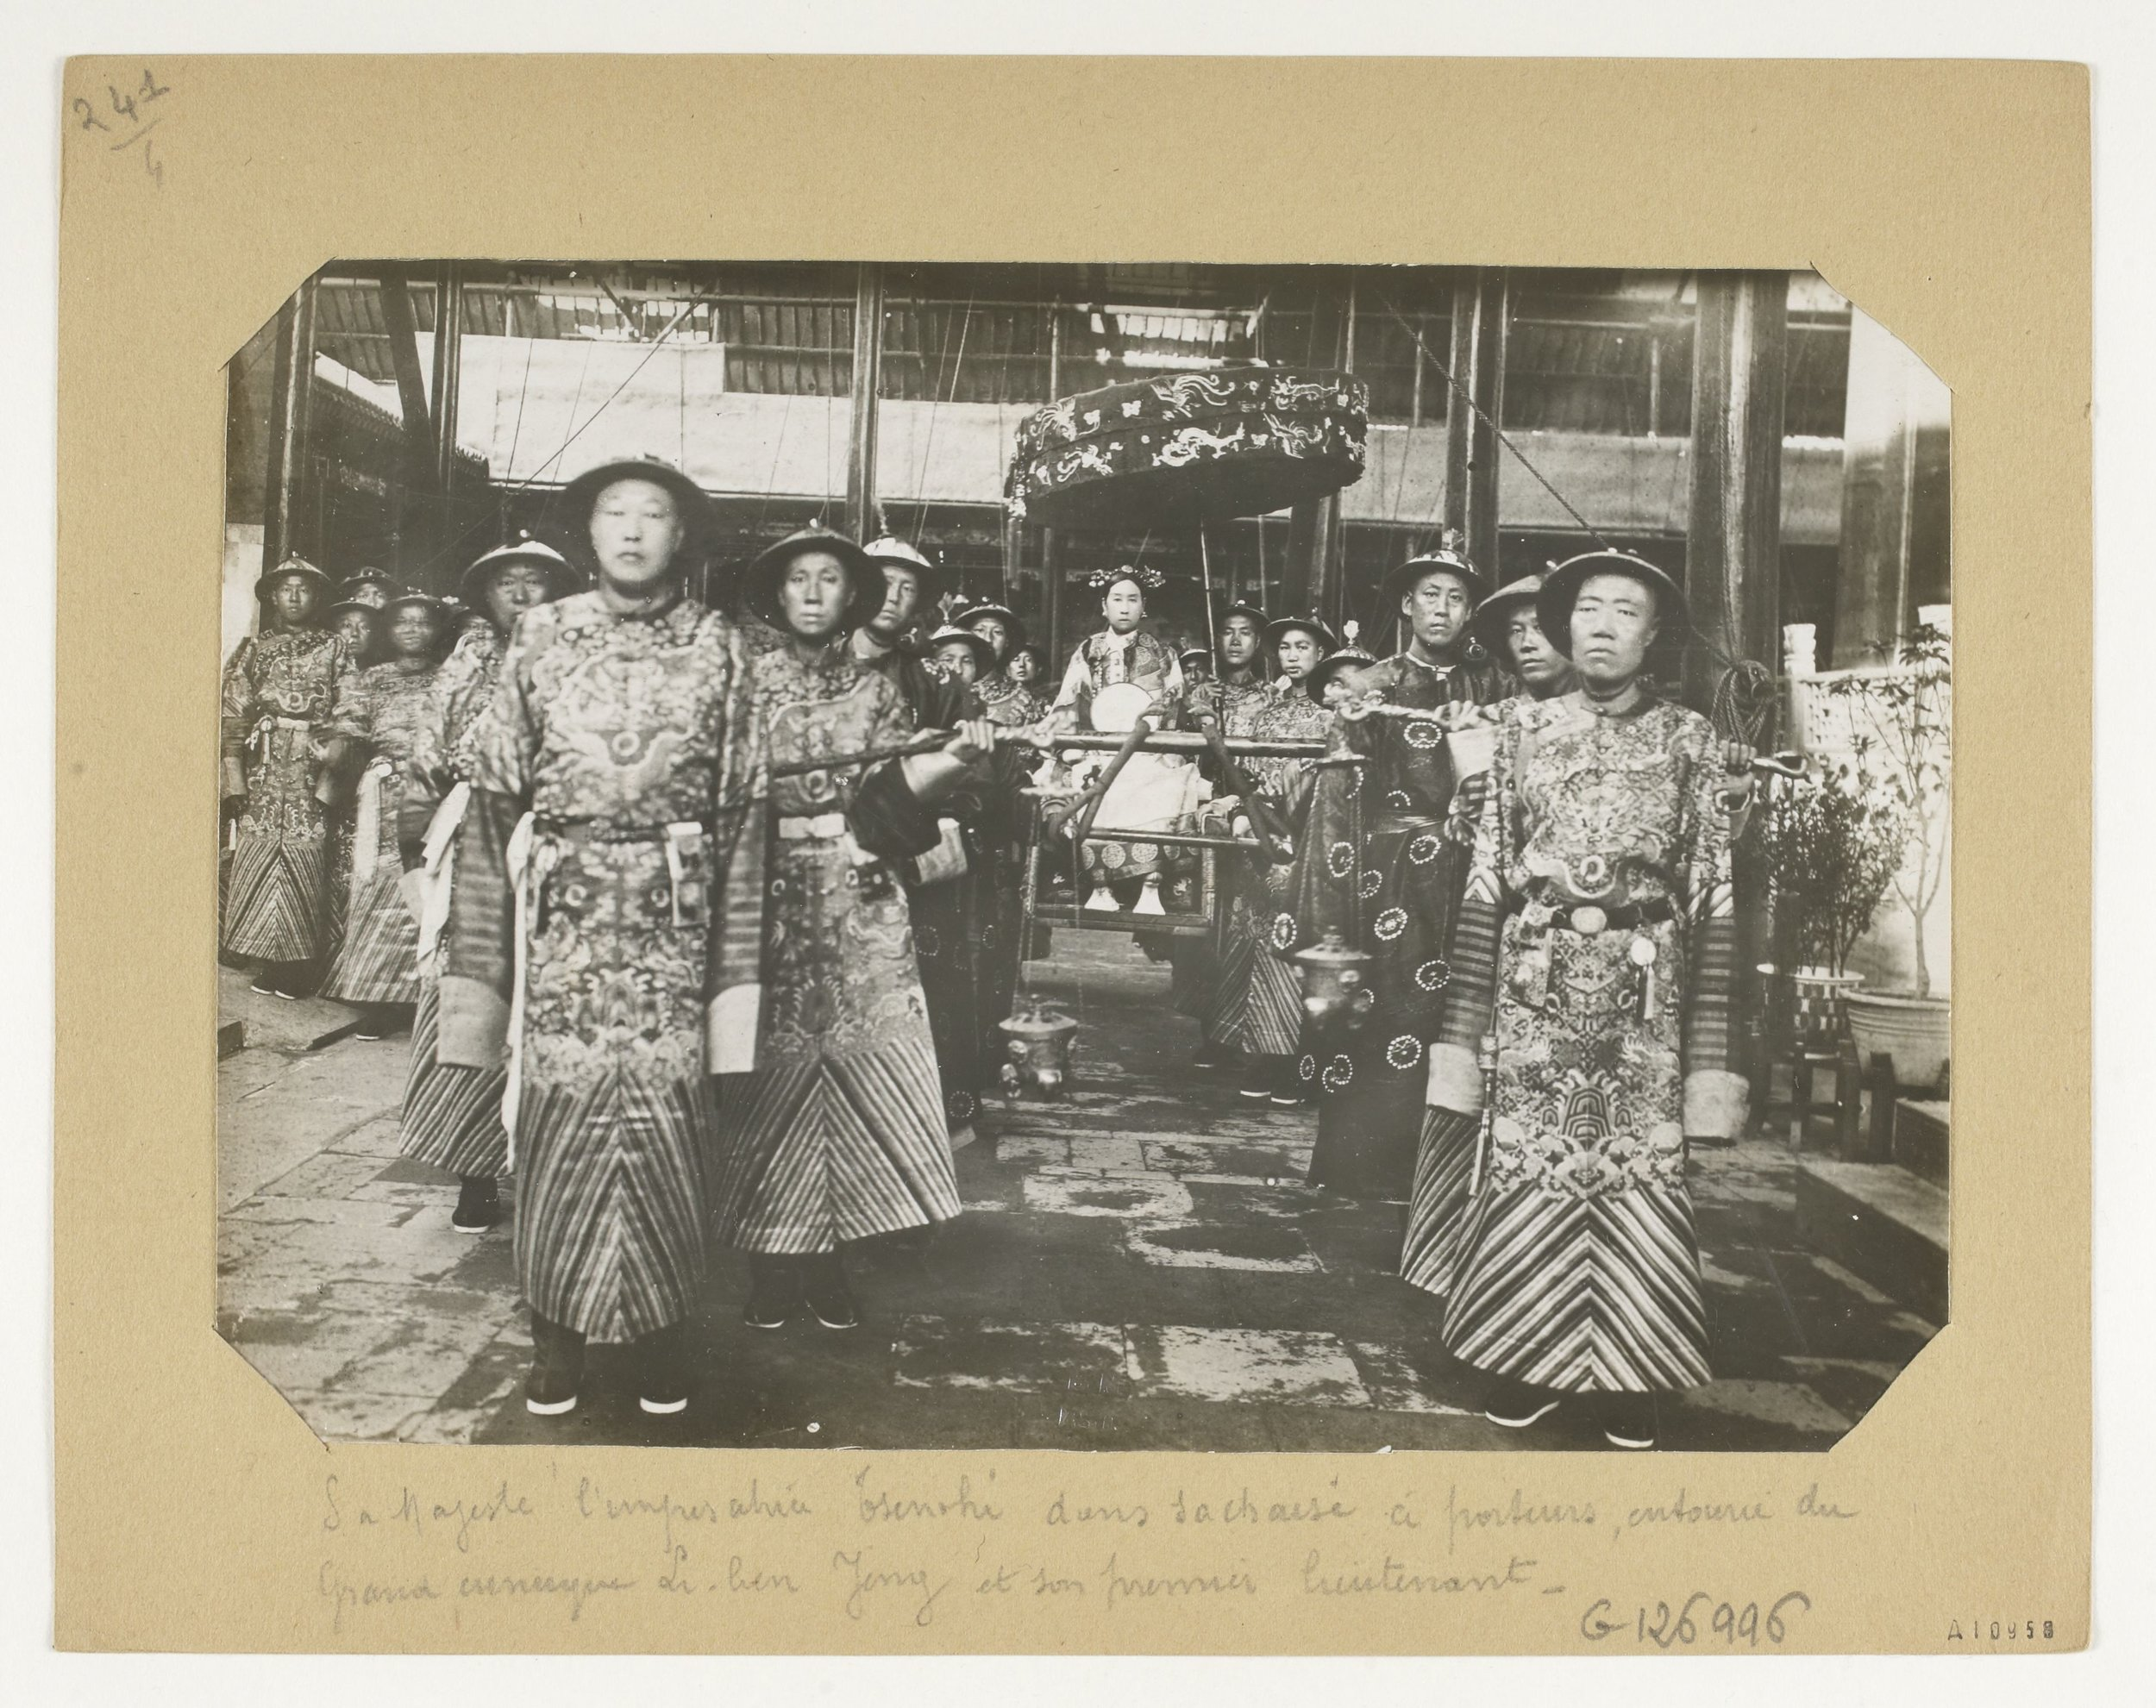 firmin-laribe-china-1904-1910-photography-of-china-10.jpg